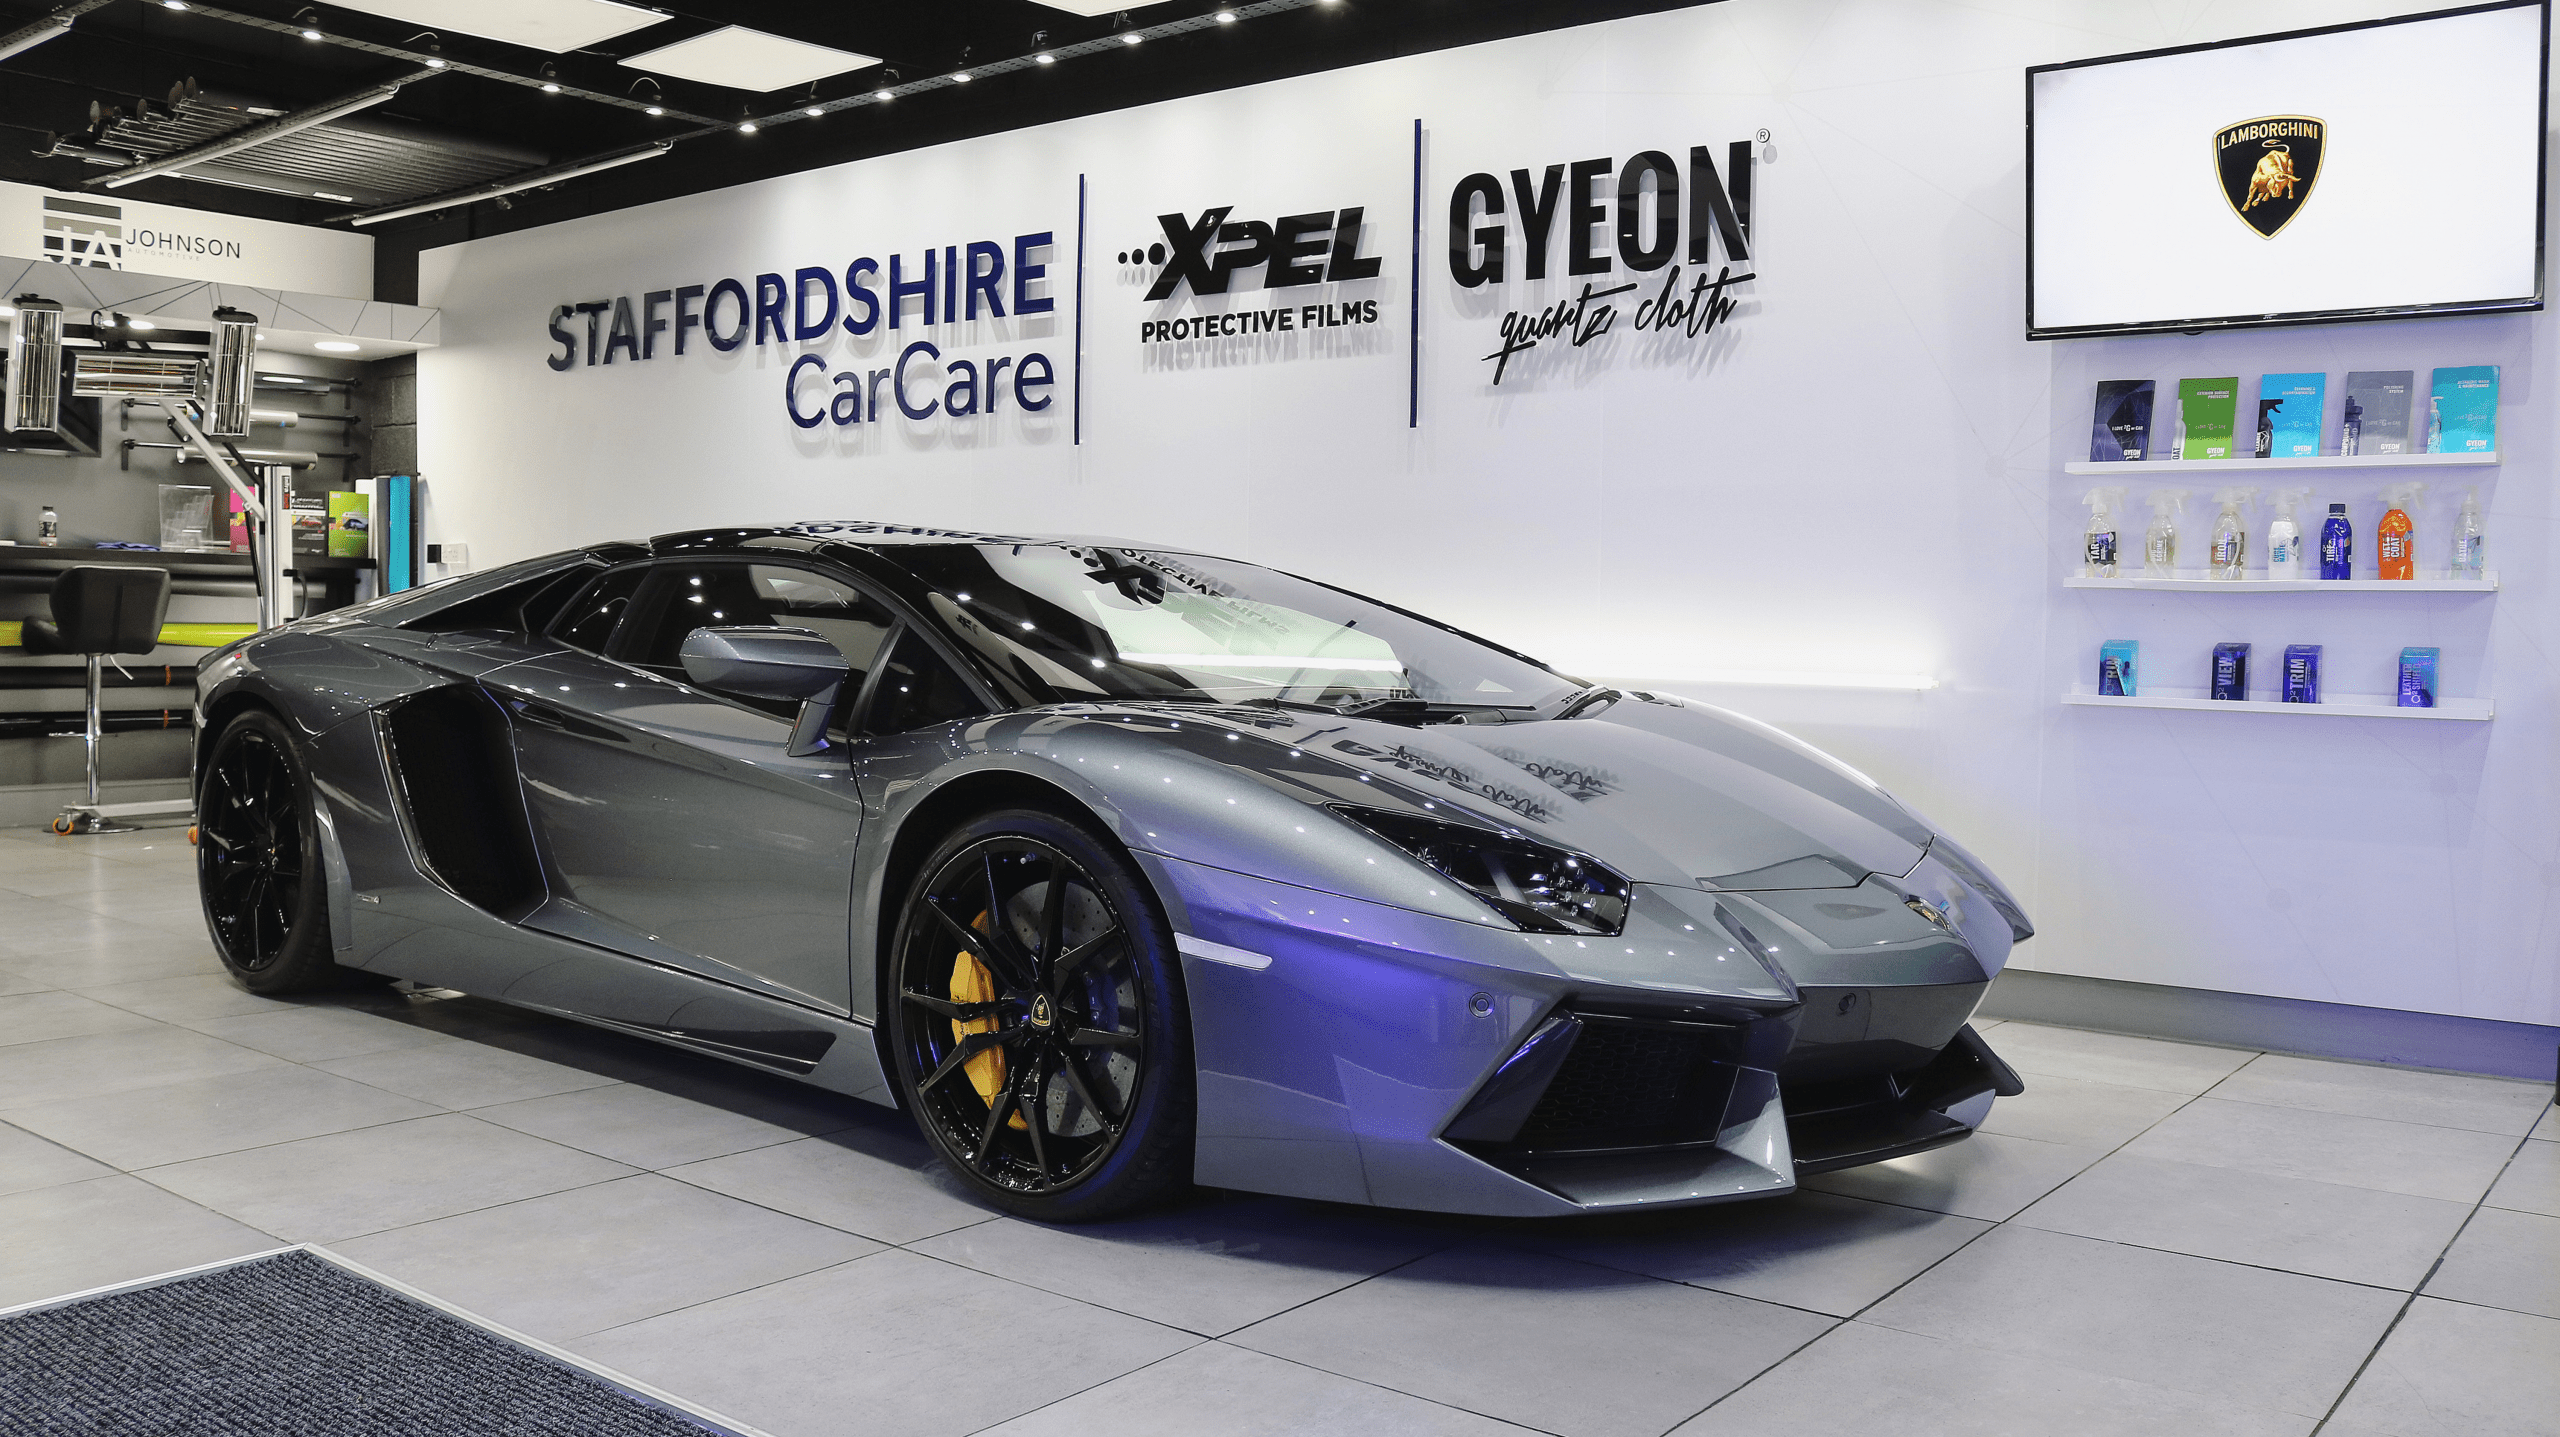 LAMBORGHINI- GYEON - staffordshire car care